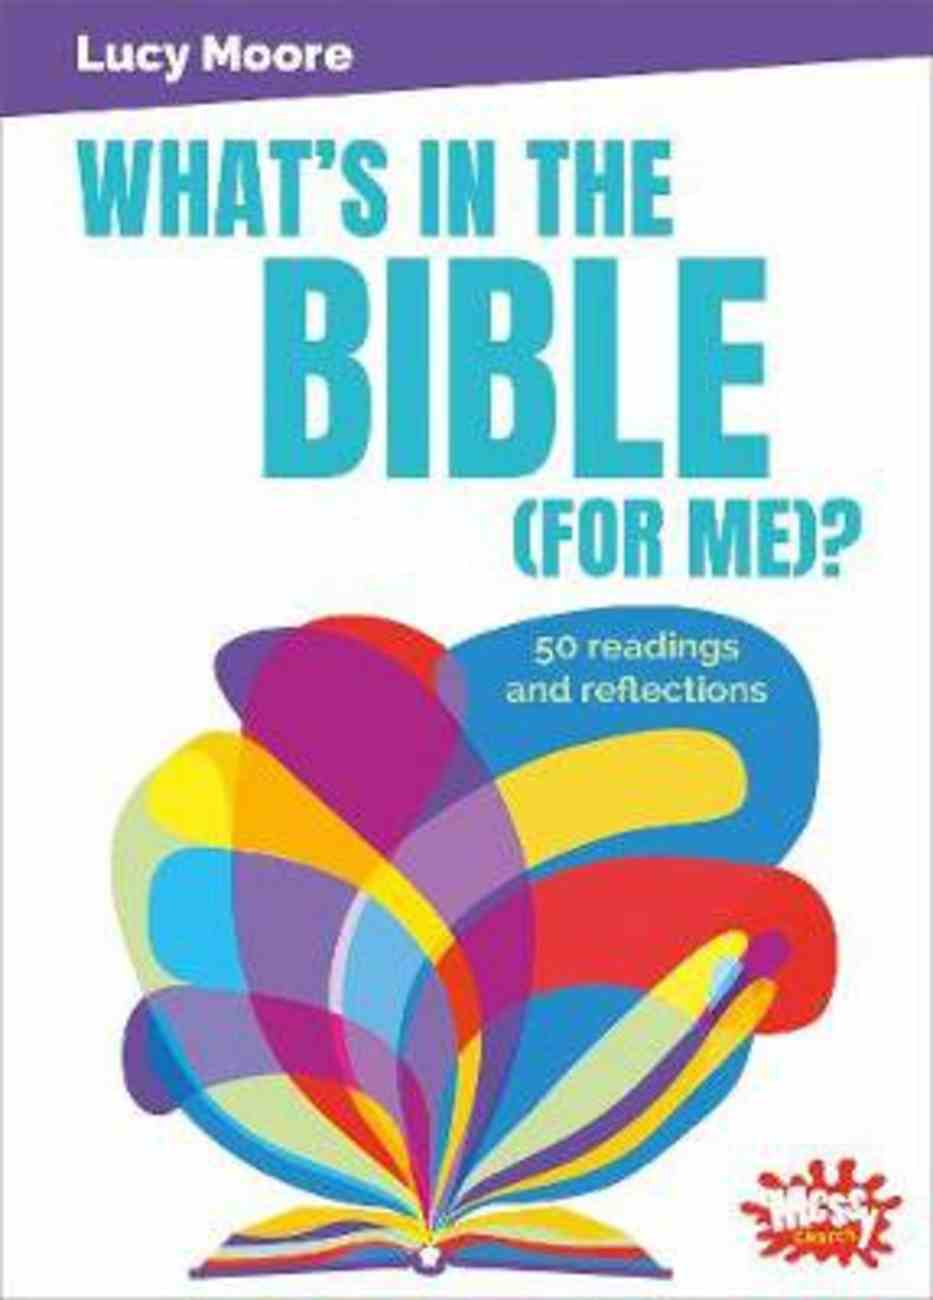 What's in the Bible ?: 50 Readings and Reflections (For Me) (Messy Church Series) Paperback